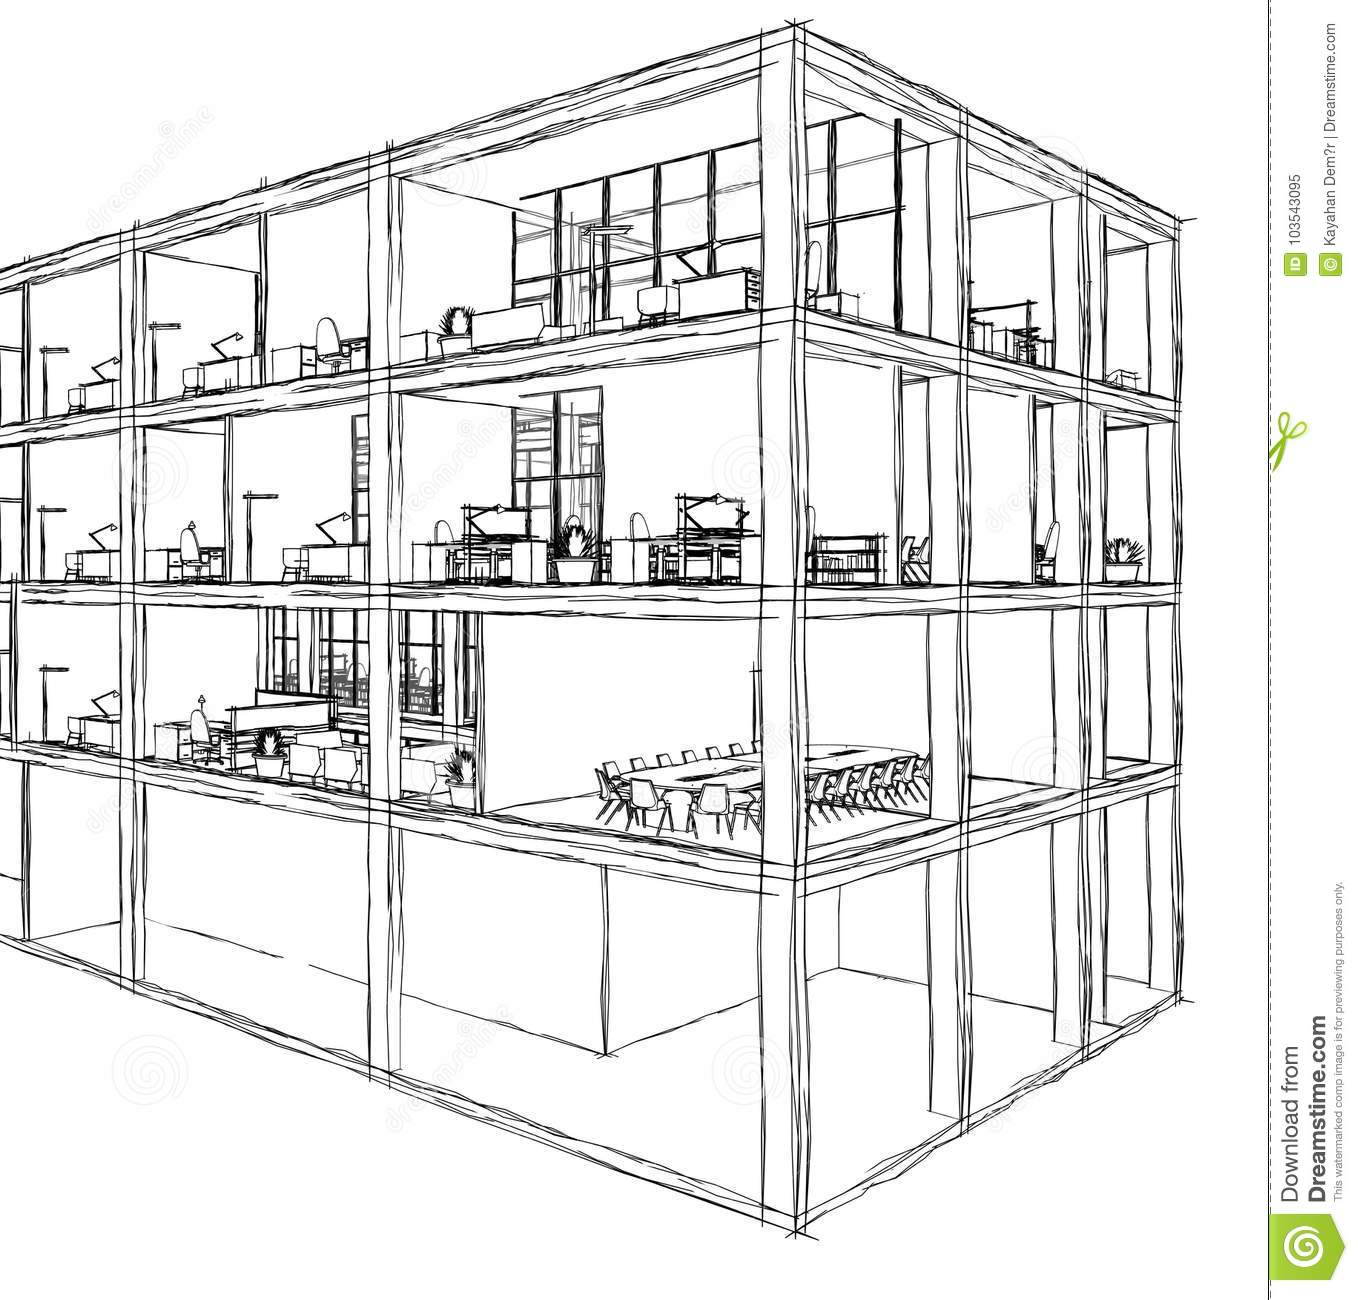 Architectural Sketch Drawing Building Model Stock